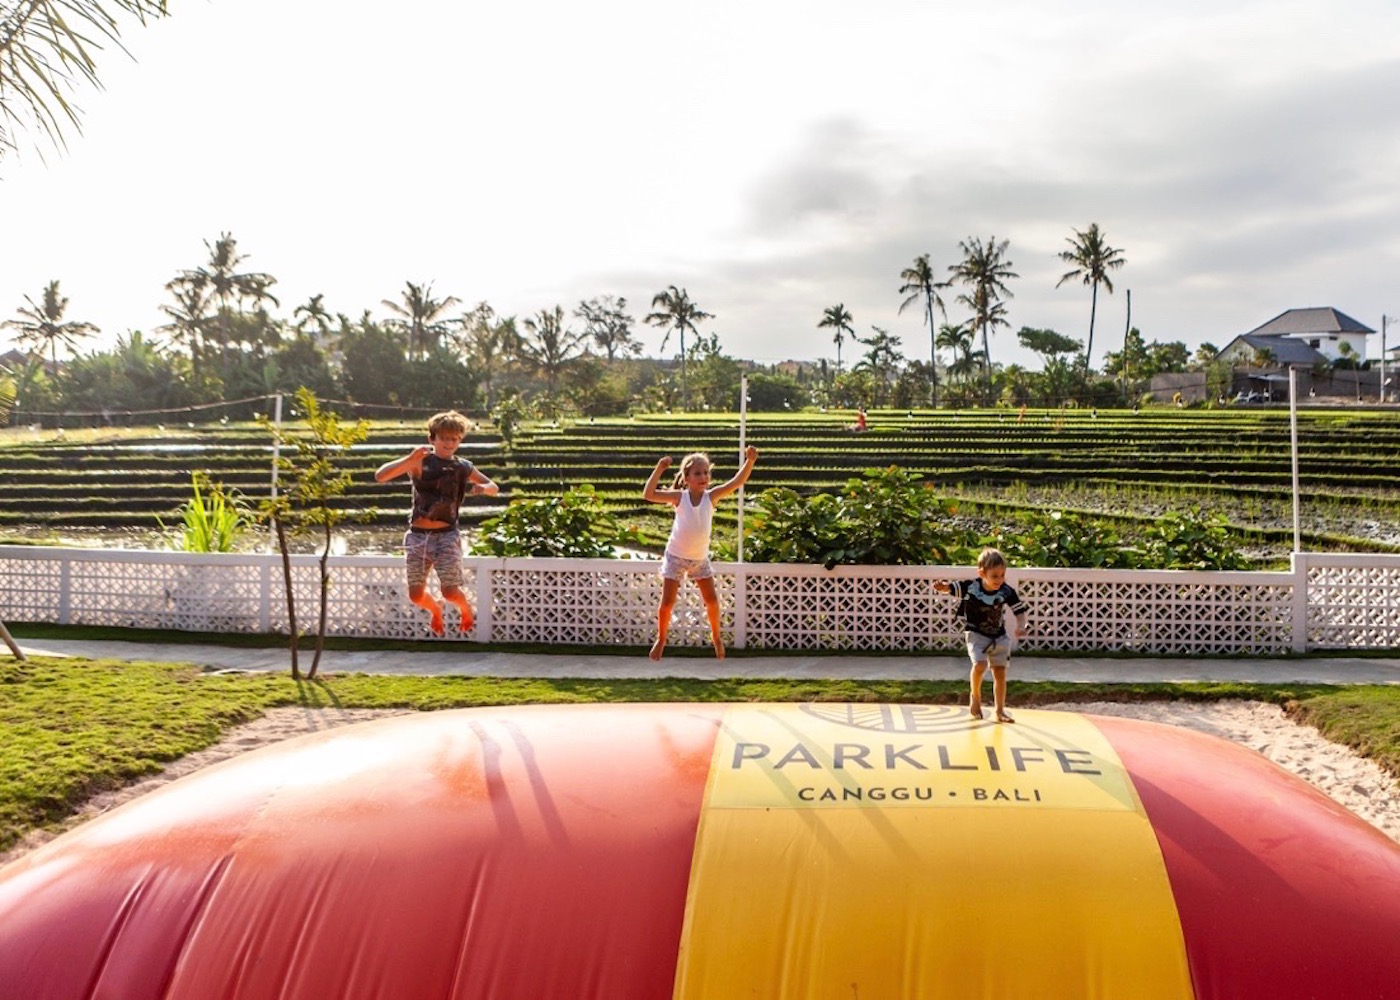 Kids playing at Parklife - a family-friendly playground, park and restaurant in Canggu, Bali - Indonesia